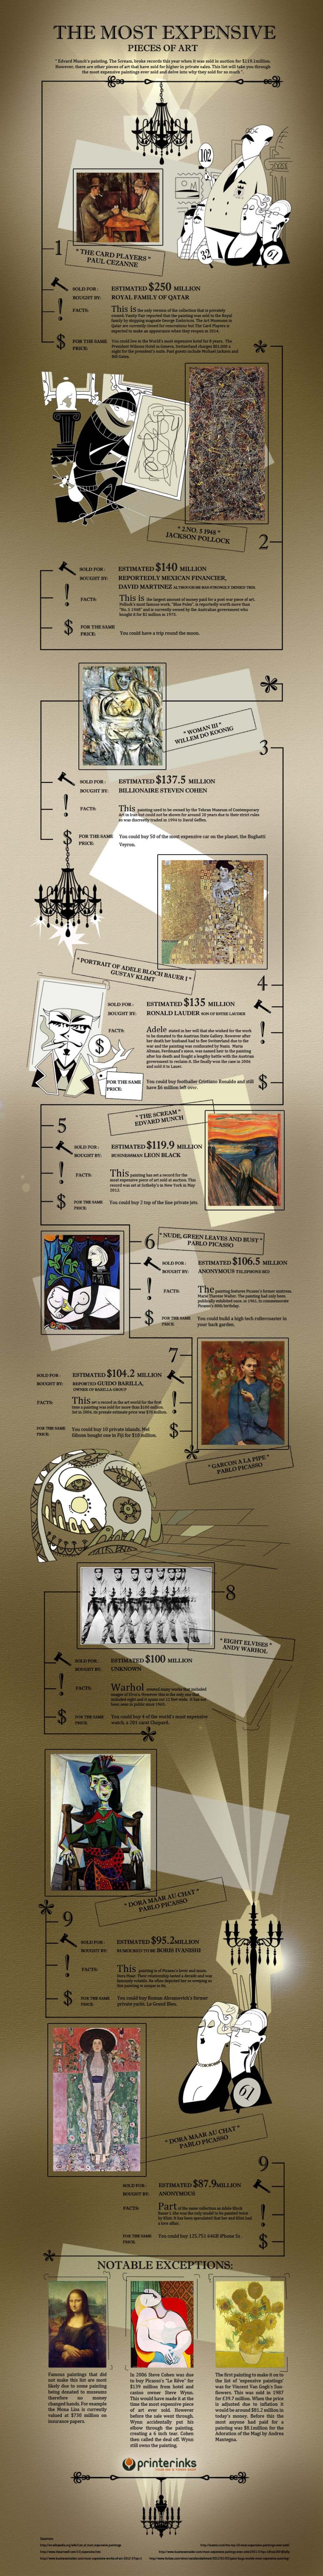 The Most Expensive Pieces of Art